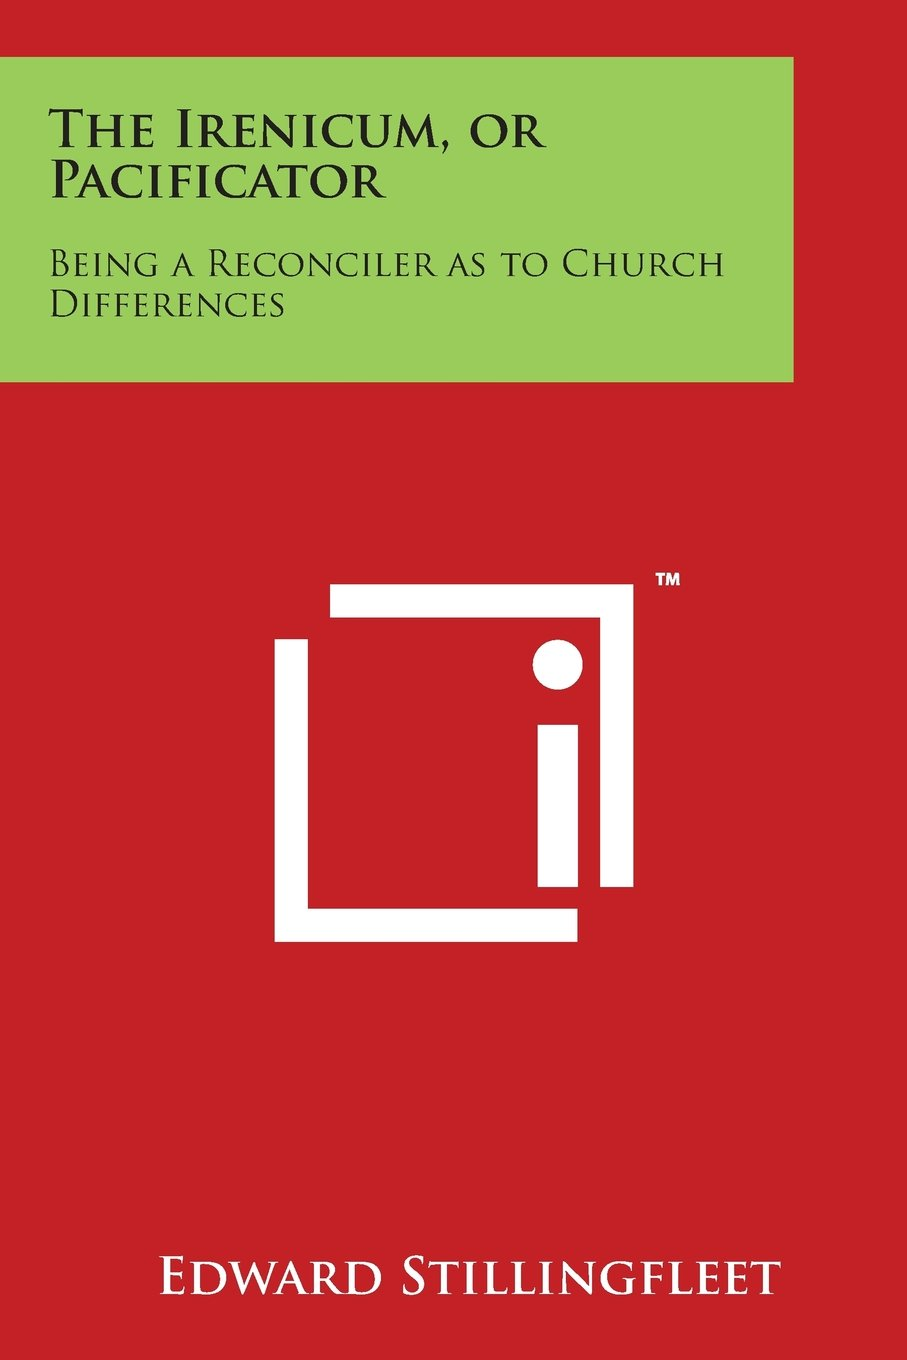 Download The Irenicum, or Pacificator: Being a Reconciler as to Church Differences pdf